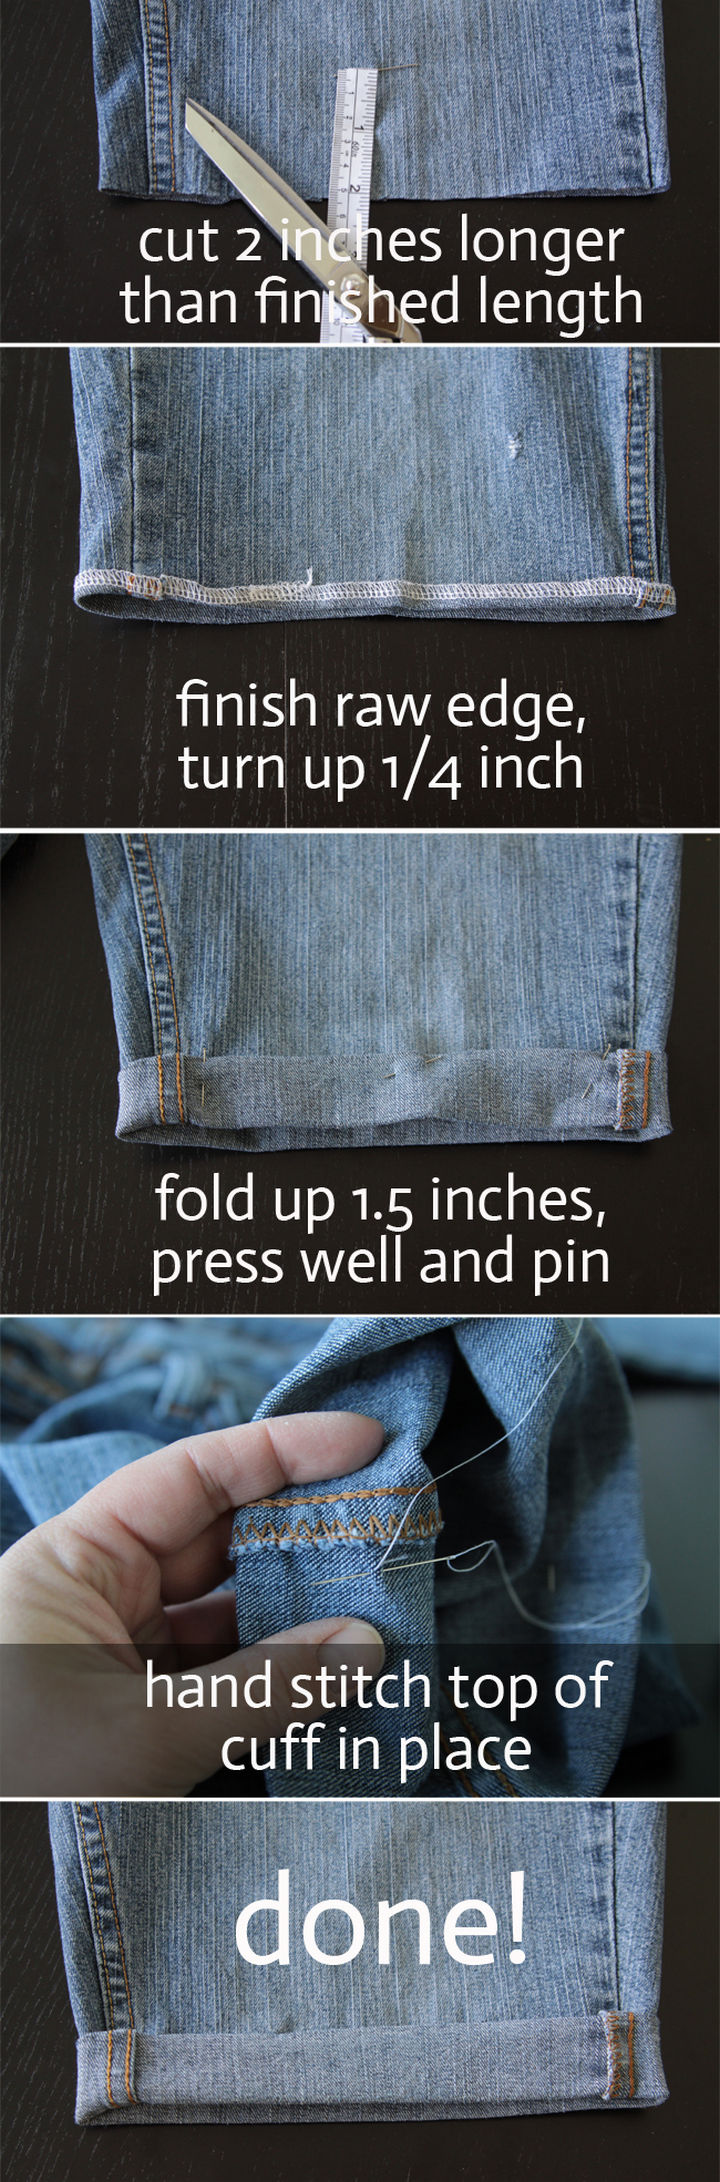 22 Kickass Life Hacks for Girls - Transform old jeans into a pair of shorts in less than 20 minutes!